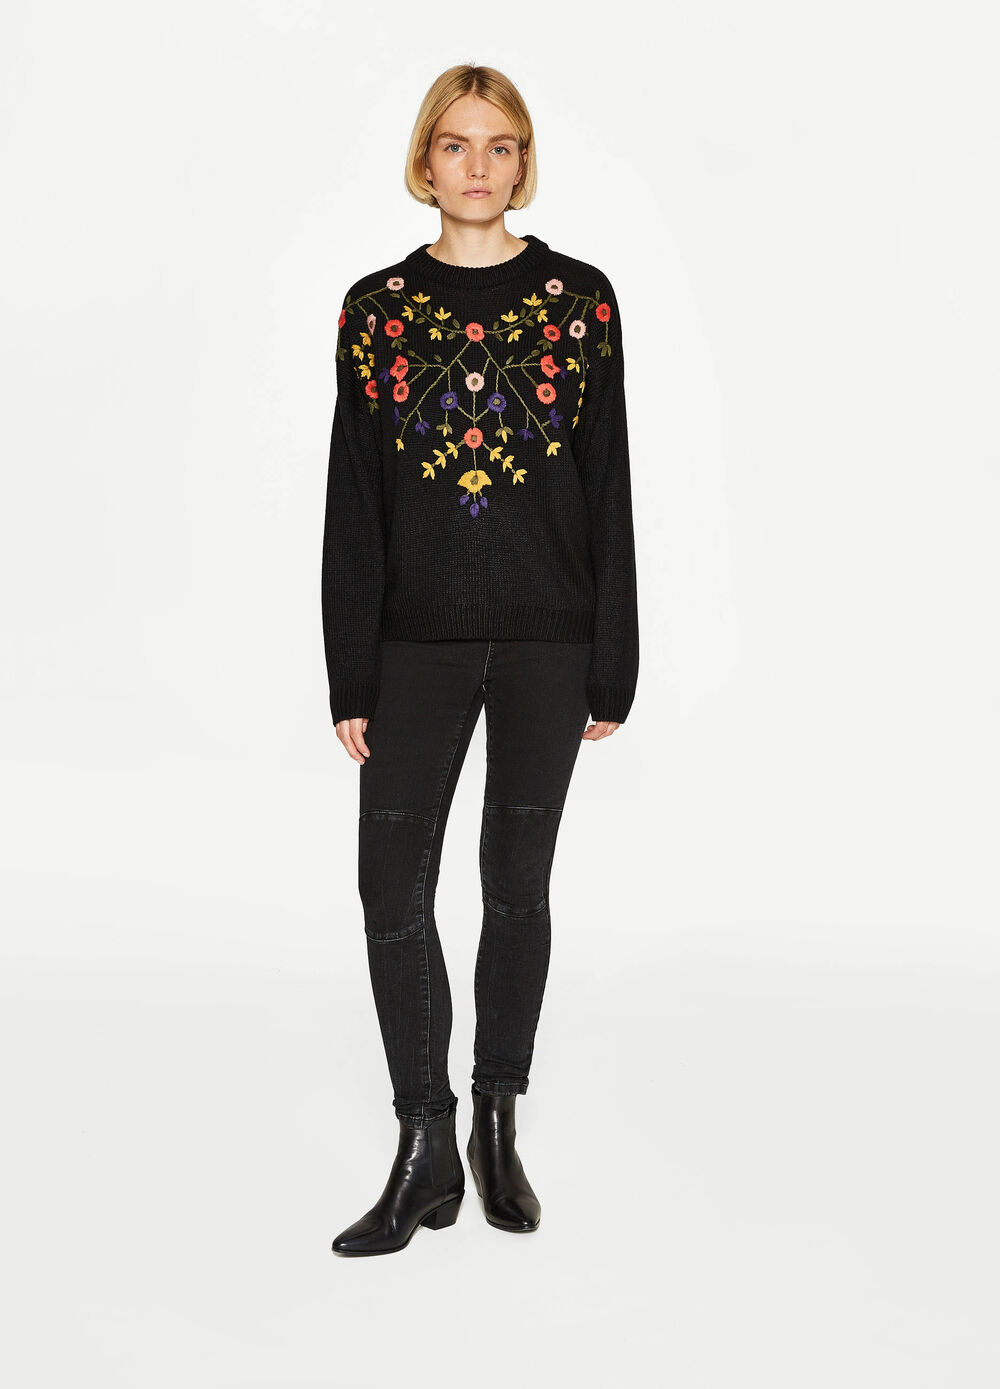 Knit pullover with floral embroidery